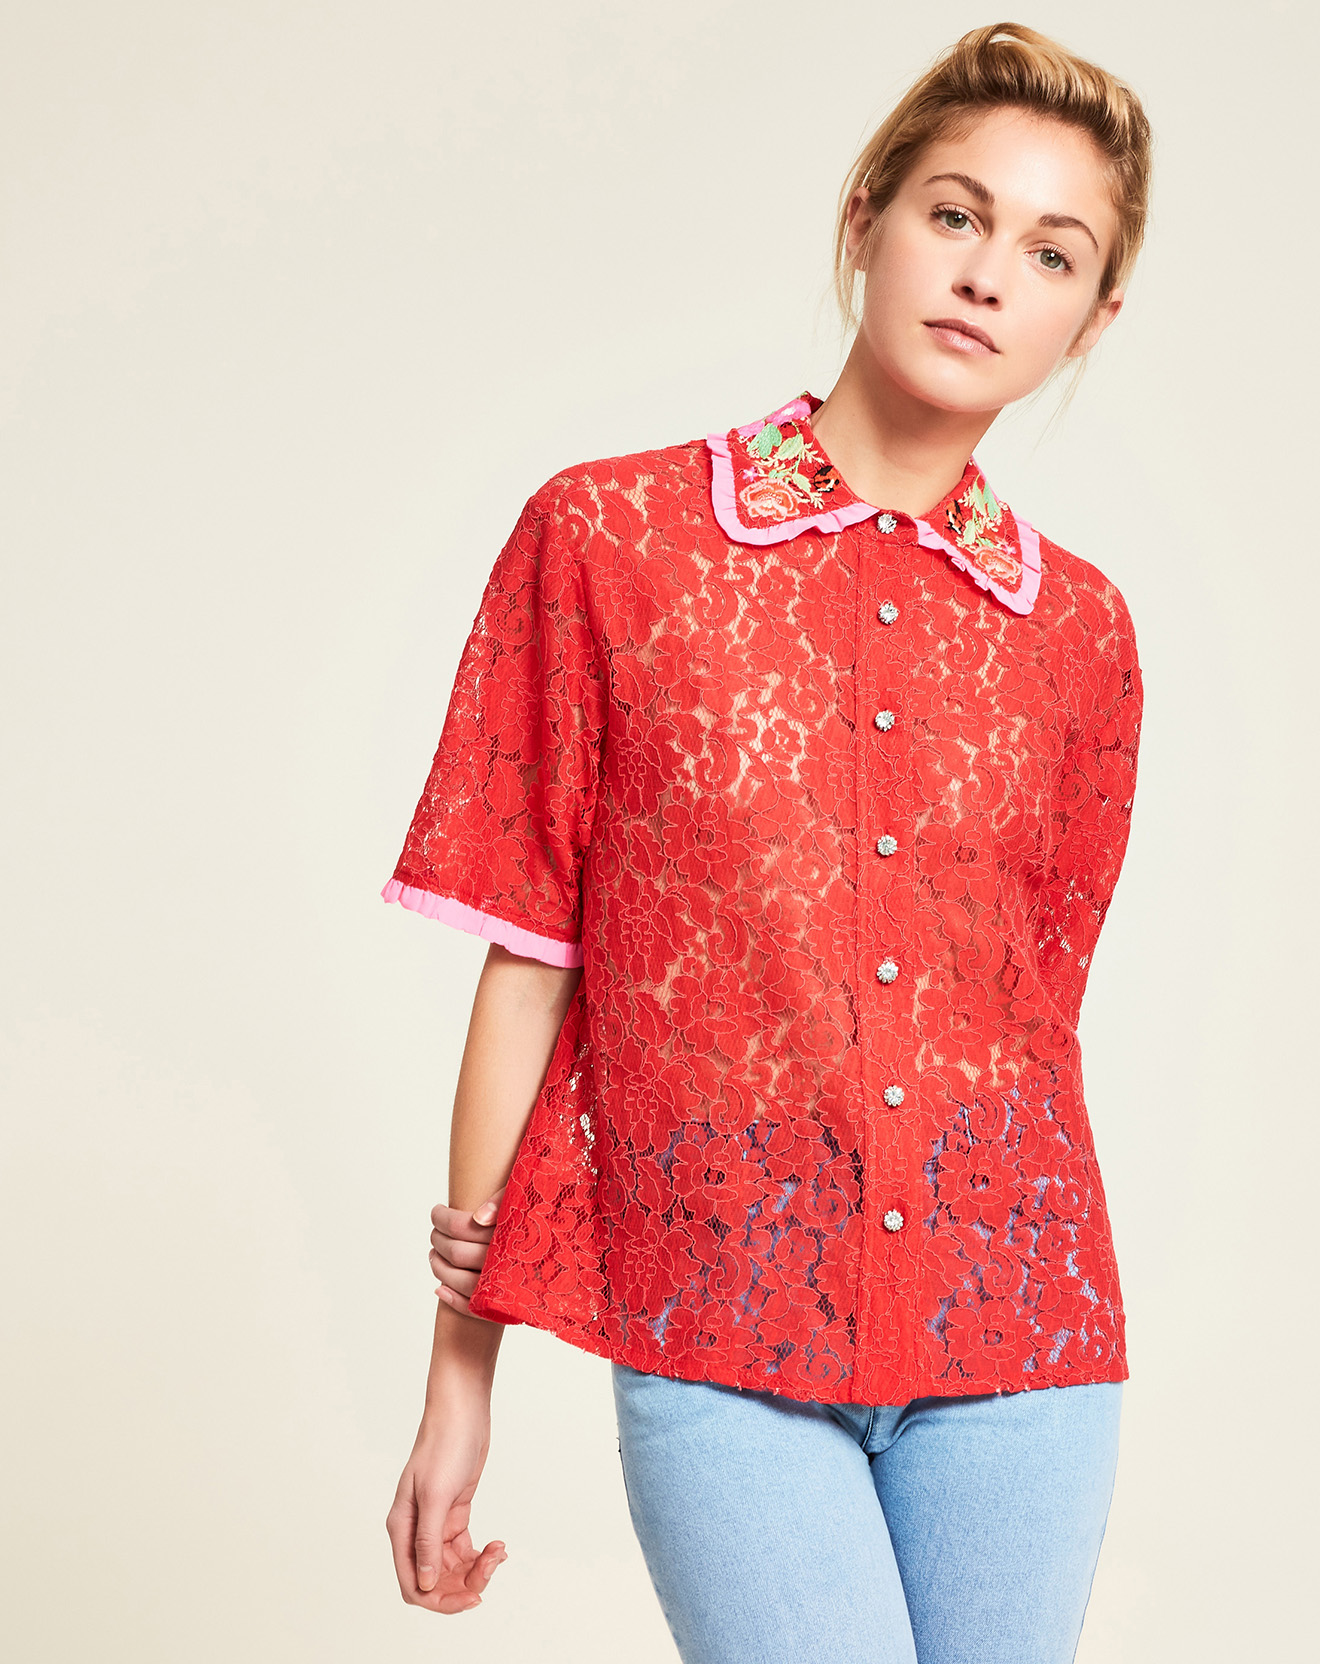 Chemise boutonné broderies dentelle Ladybug coquelicot